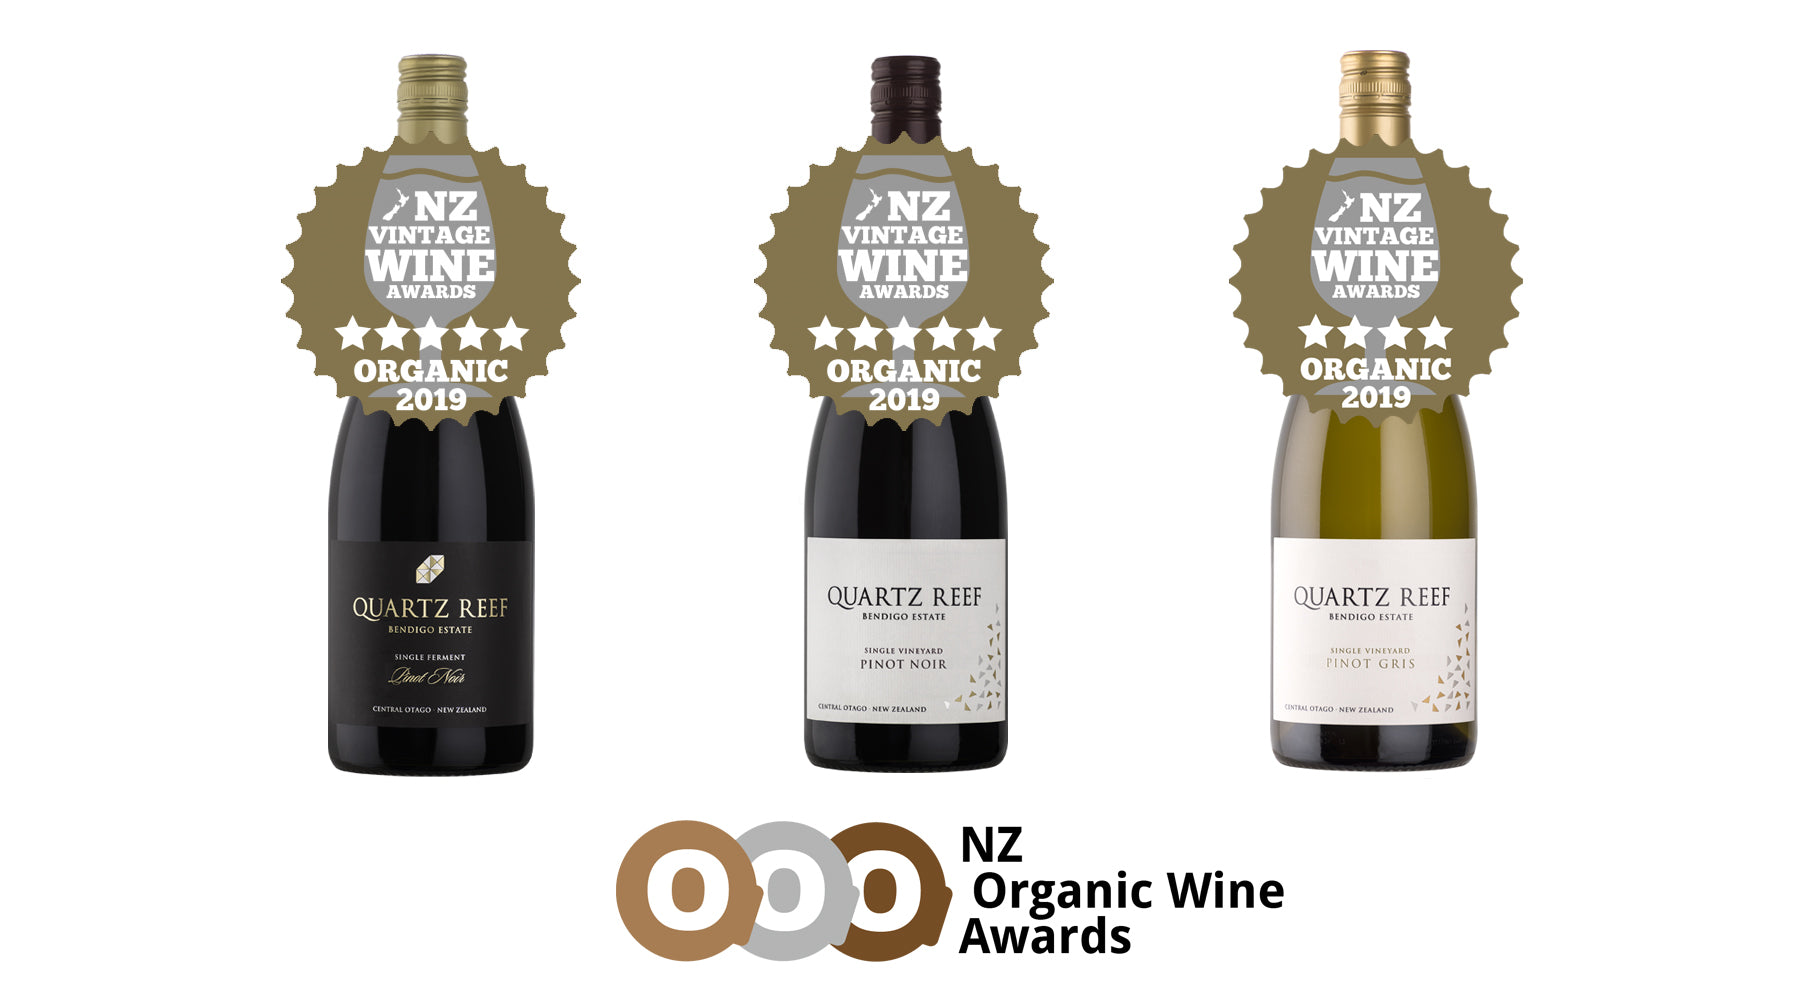 NZ Organic Wine Awards - Vintage Wine Awards (2014) Results